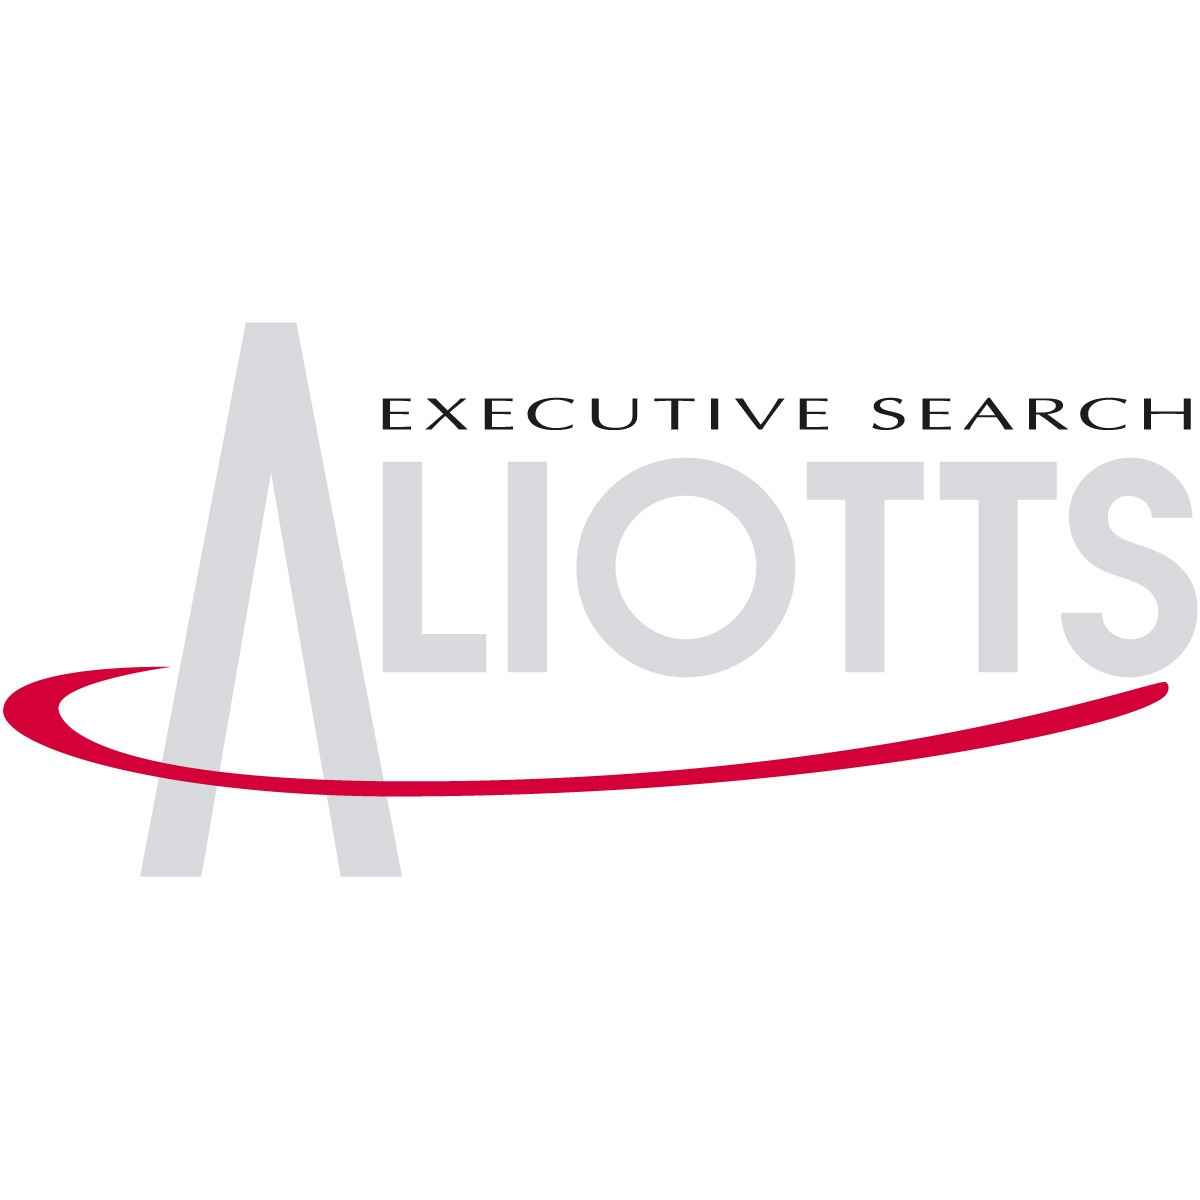 the Aliotts Executive Search logo.